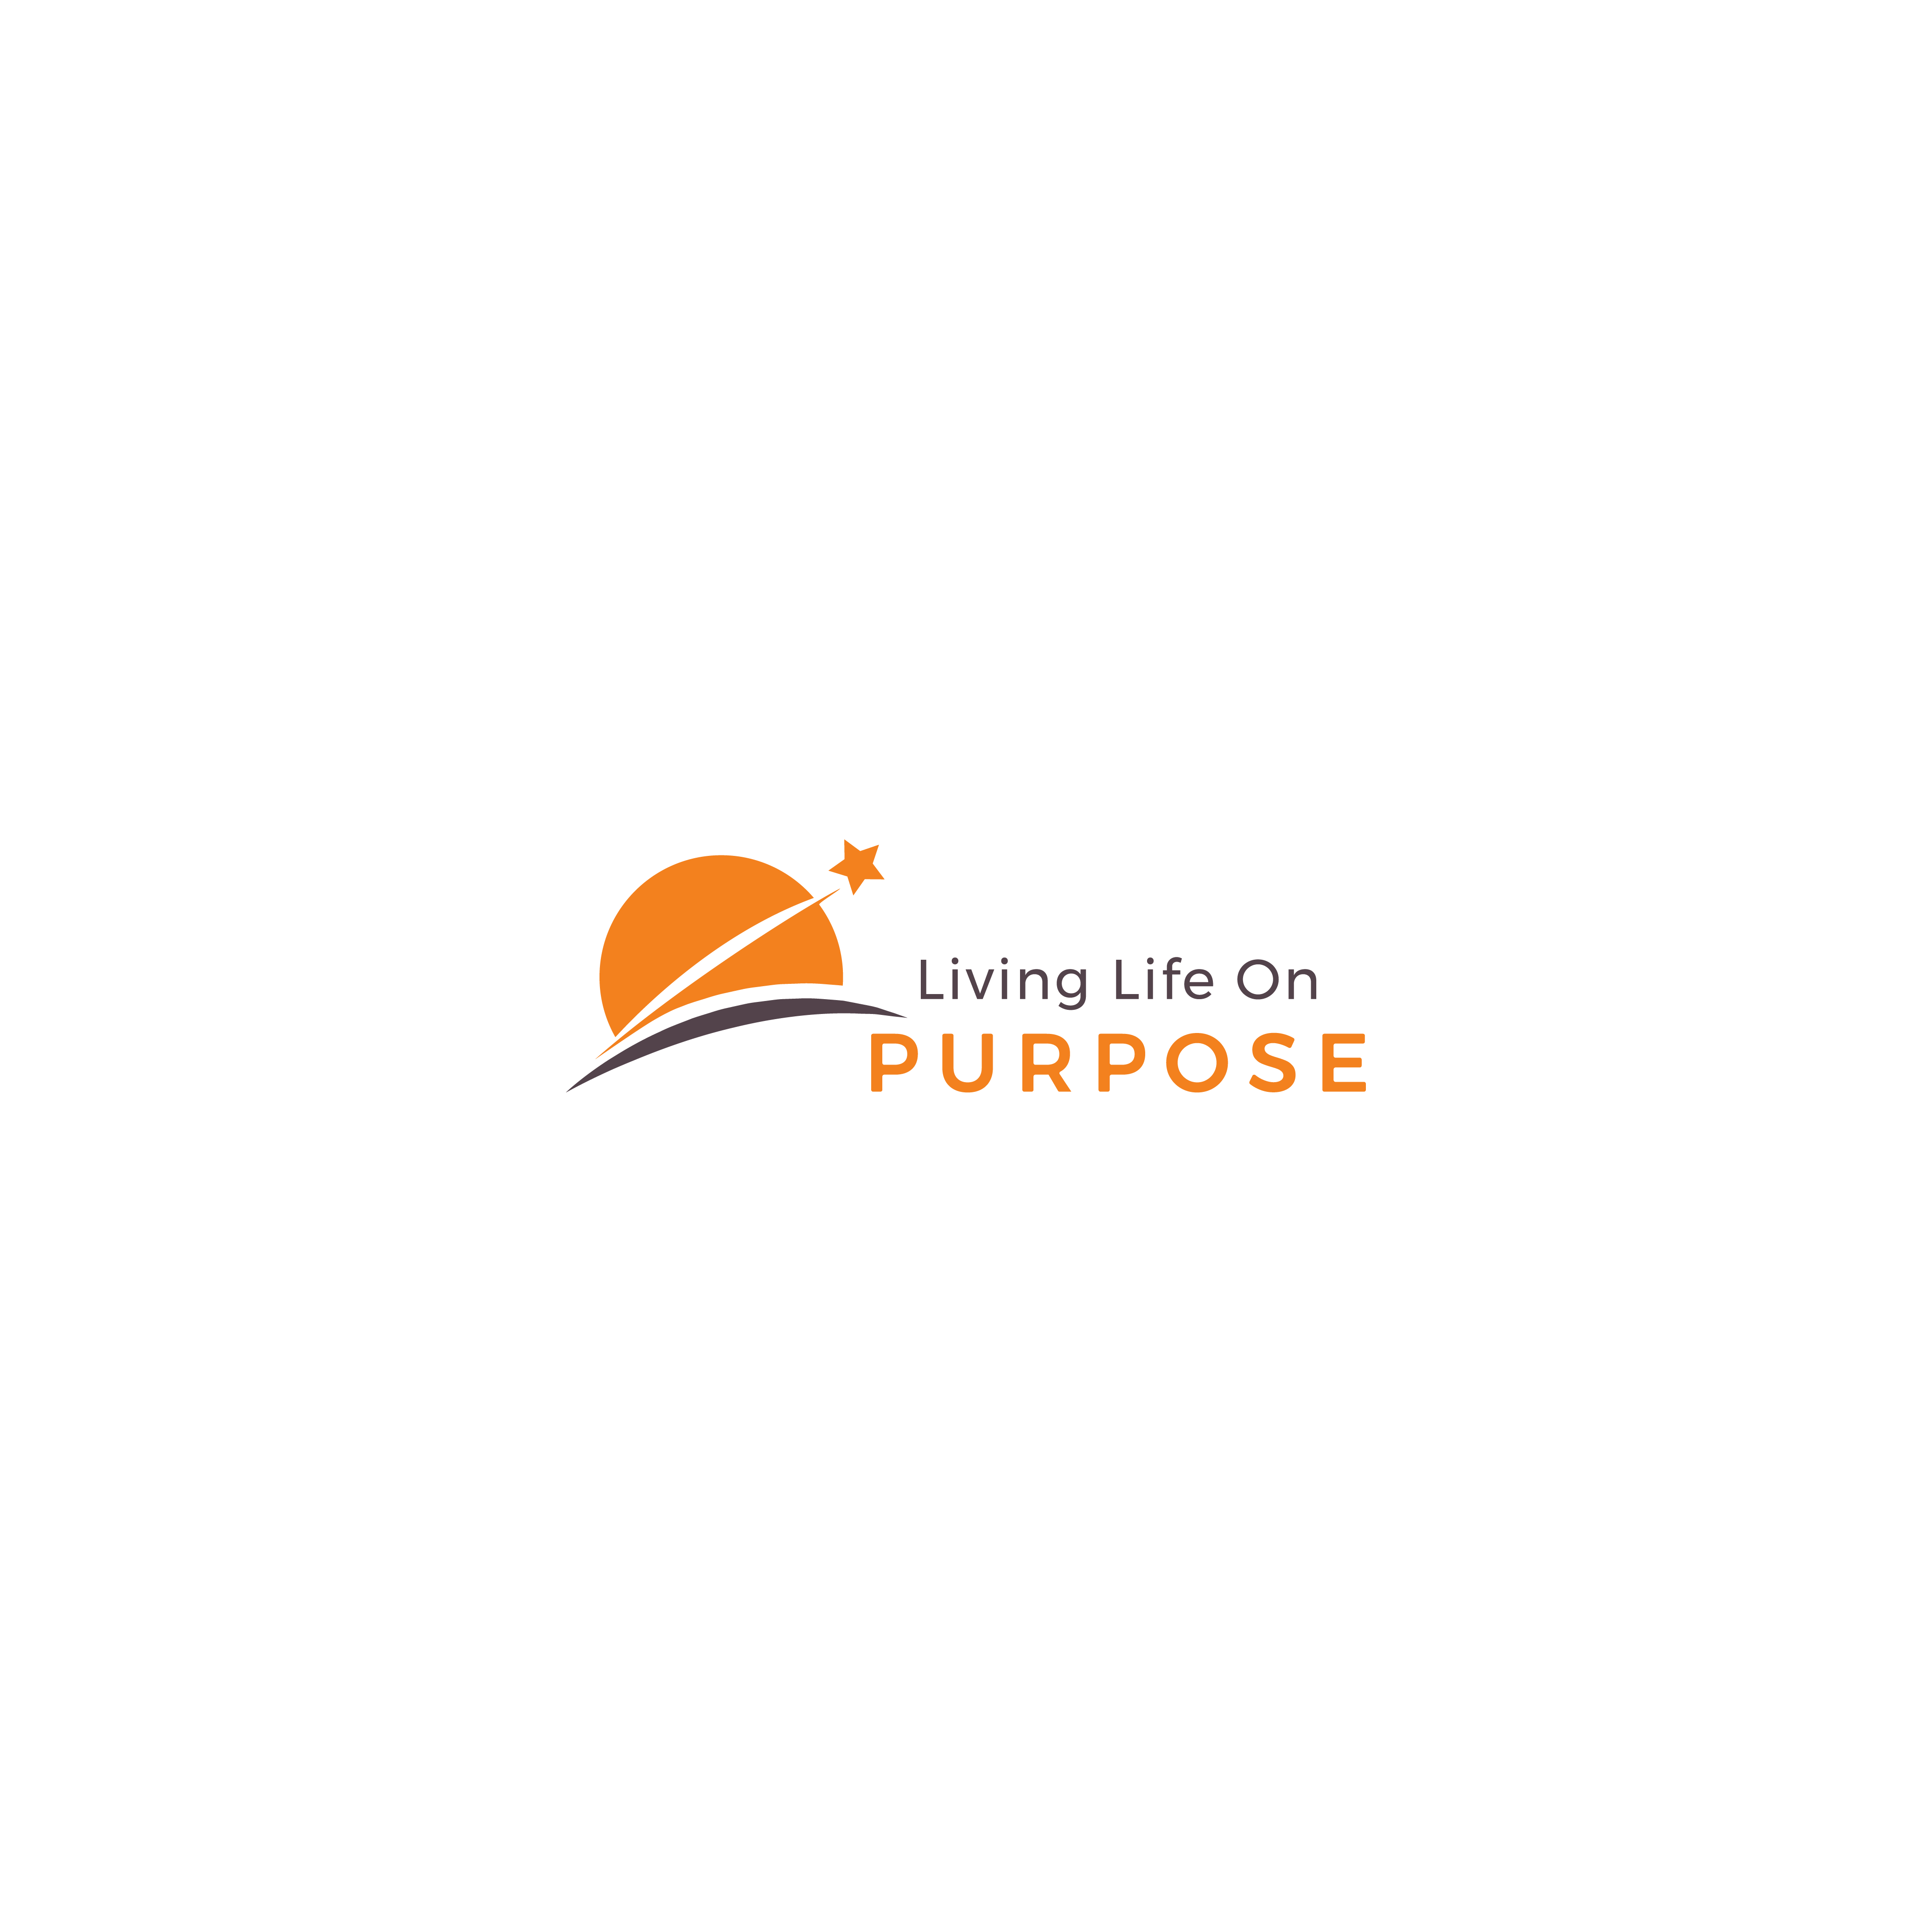 Need an energetic and soulful logo for Living Life on Purpose!